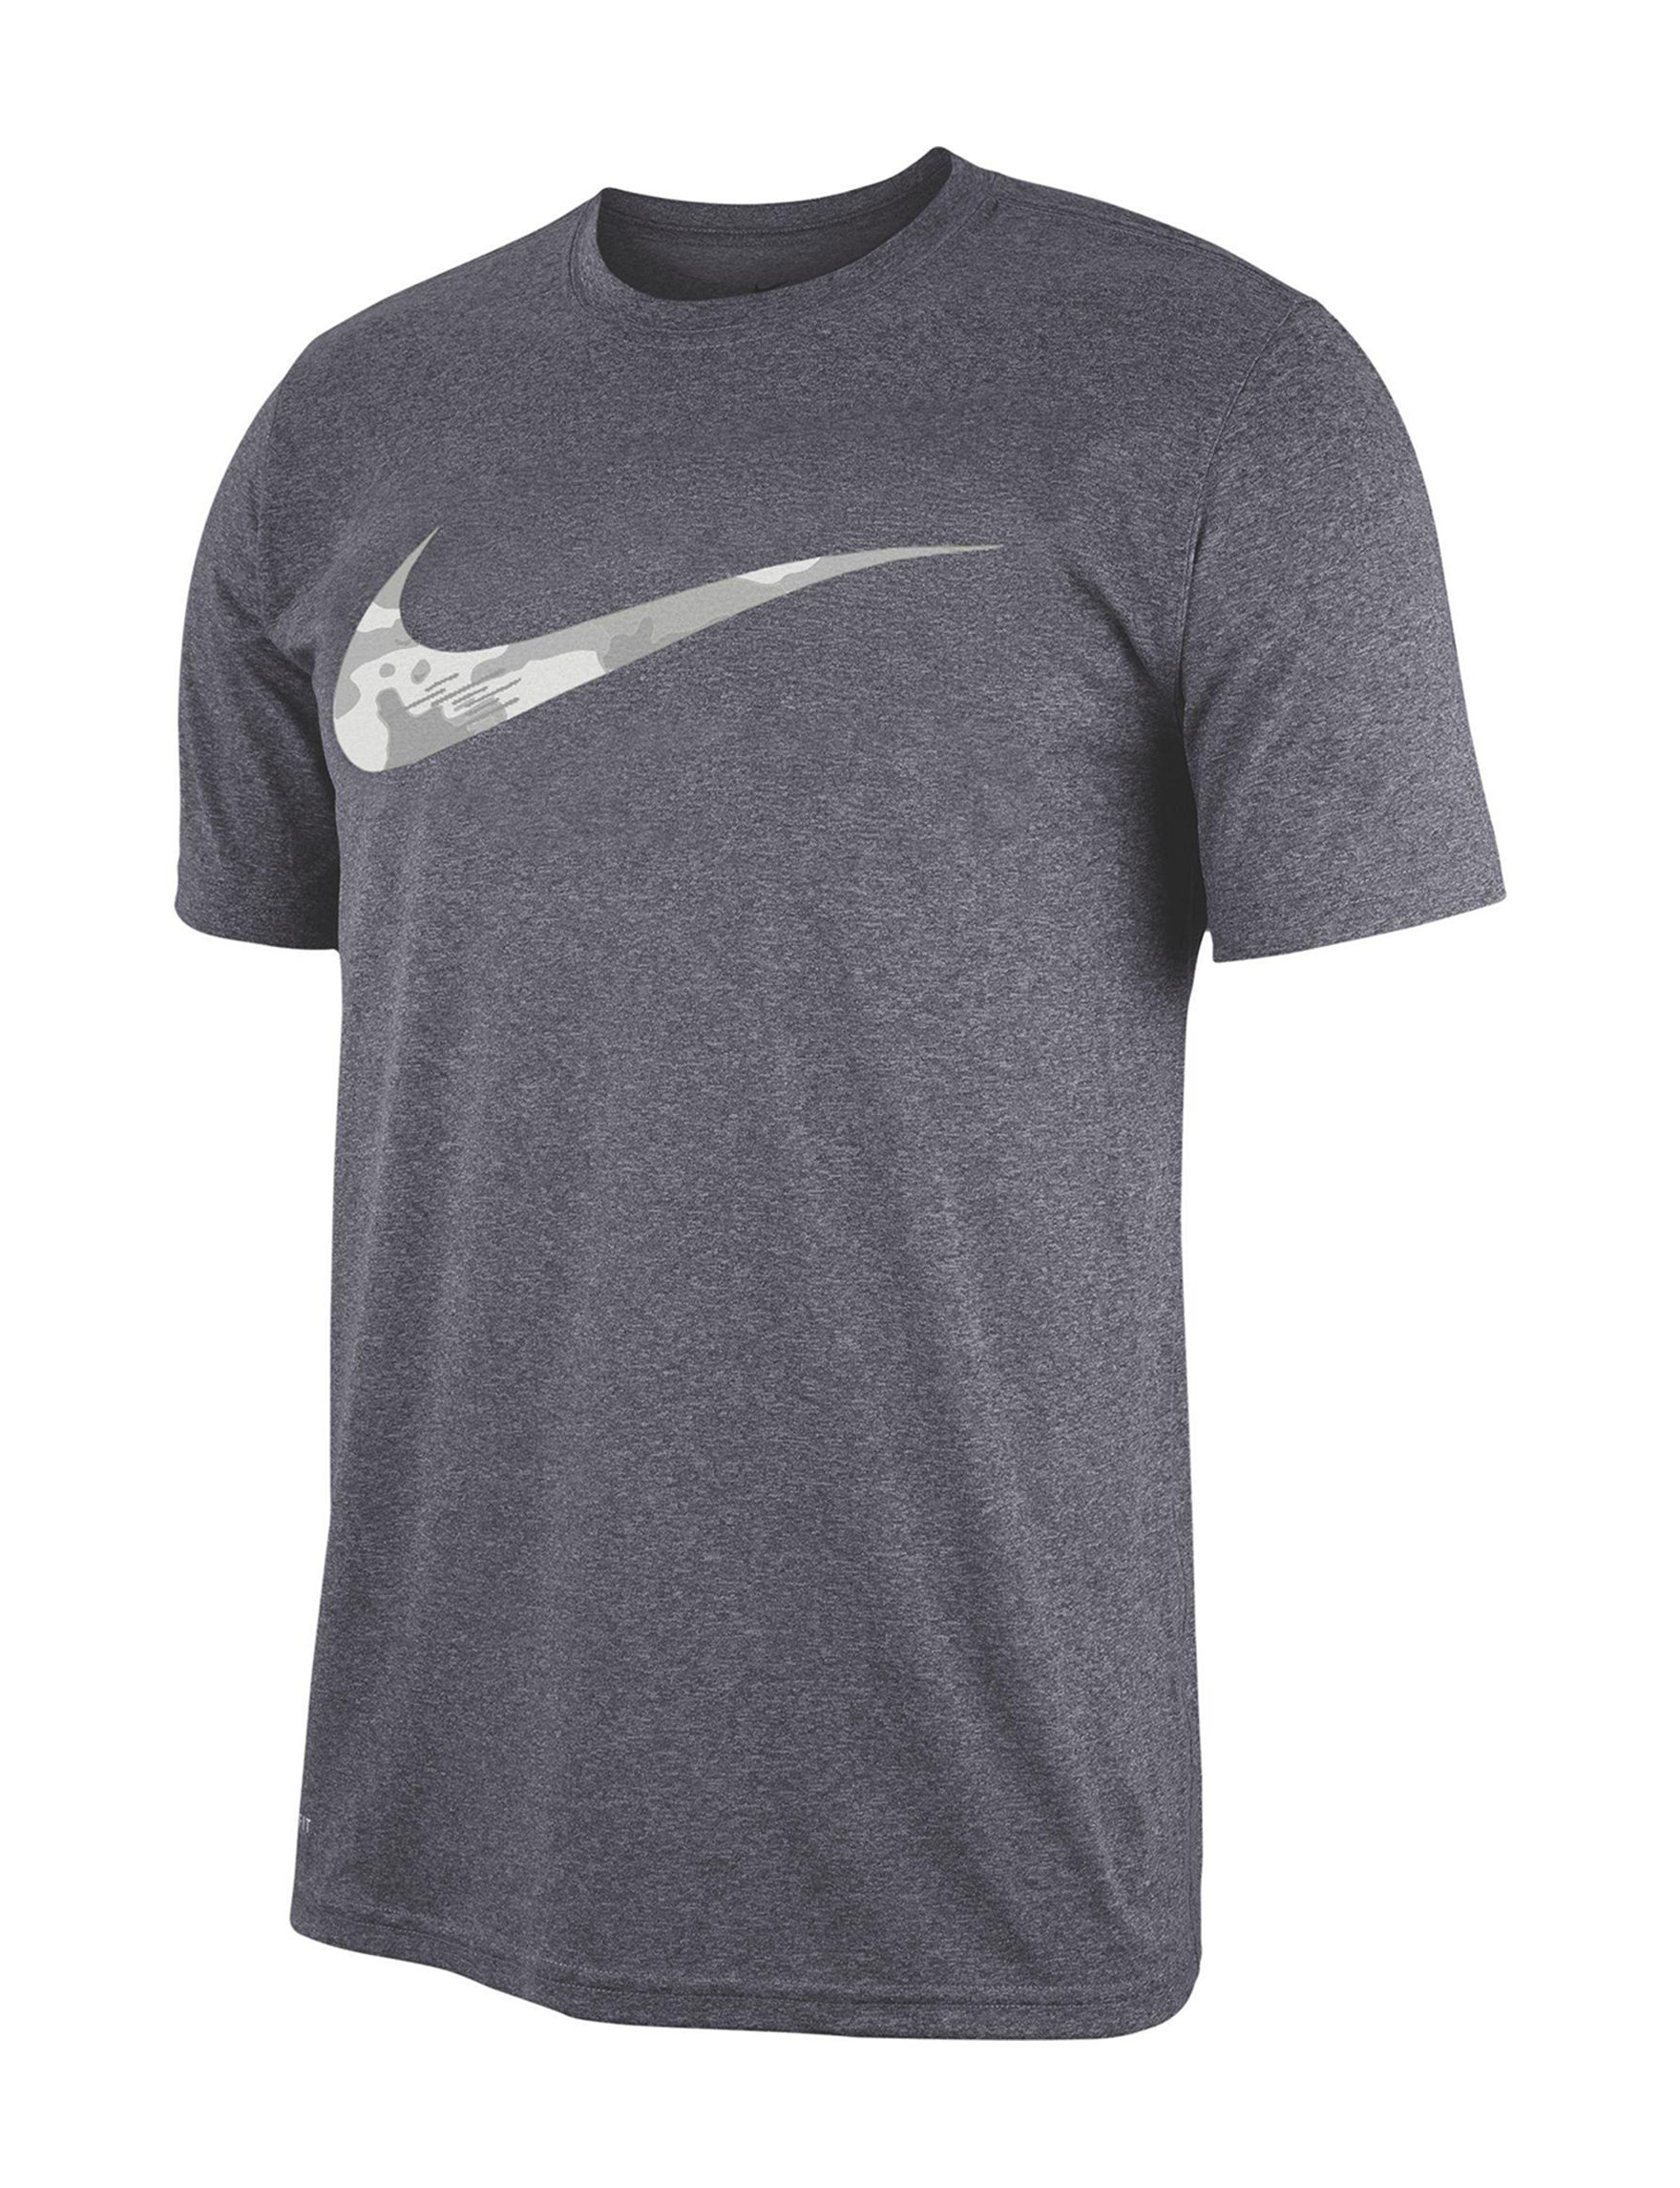 Nike Grey Tees & Tanks